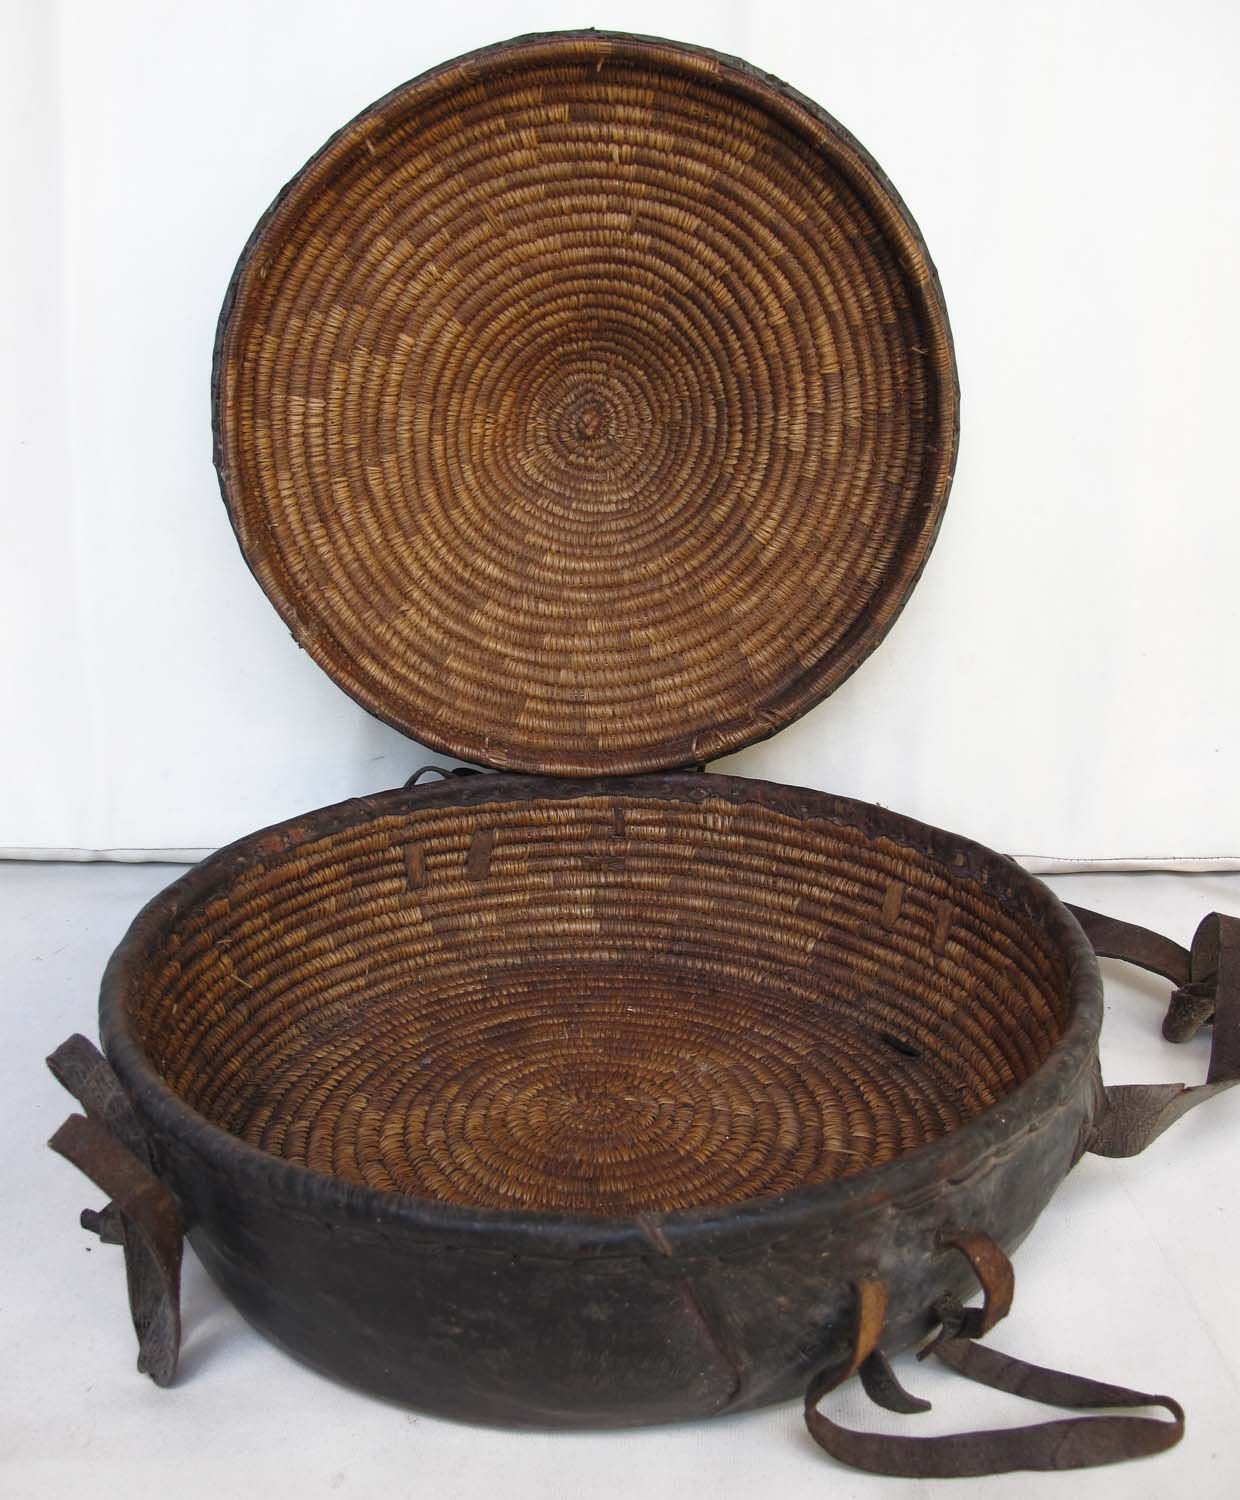 leather covered basket, Bali...